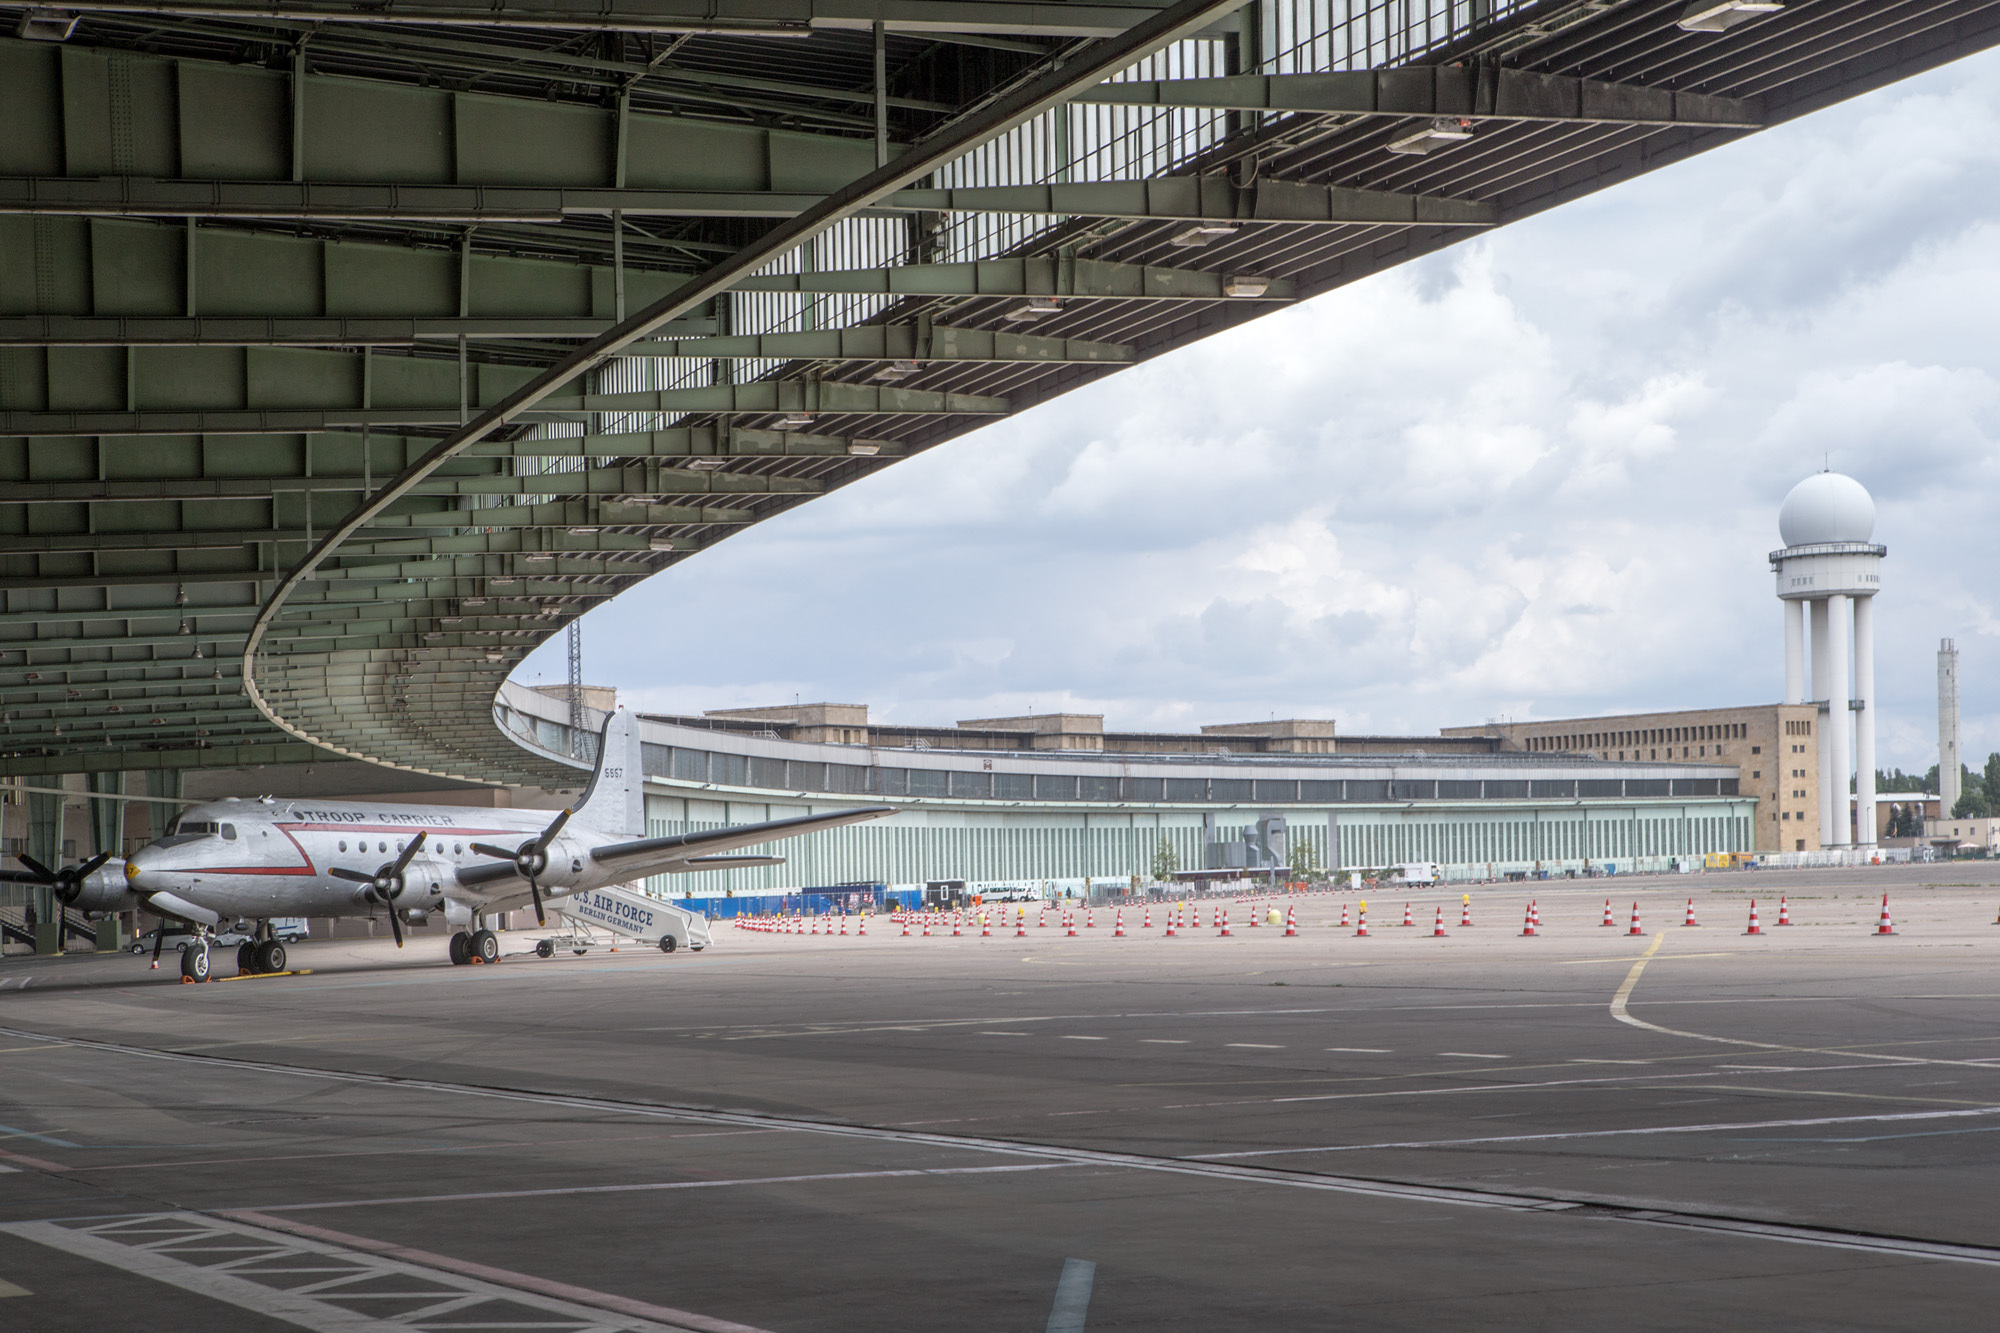 berlin 39 s tempelhof airport achieving redemption through adaptive reuse archdaily. Black Bedroom Furniture Sets. Home Design Ideas